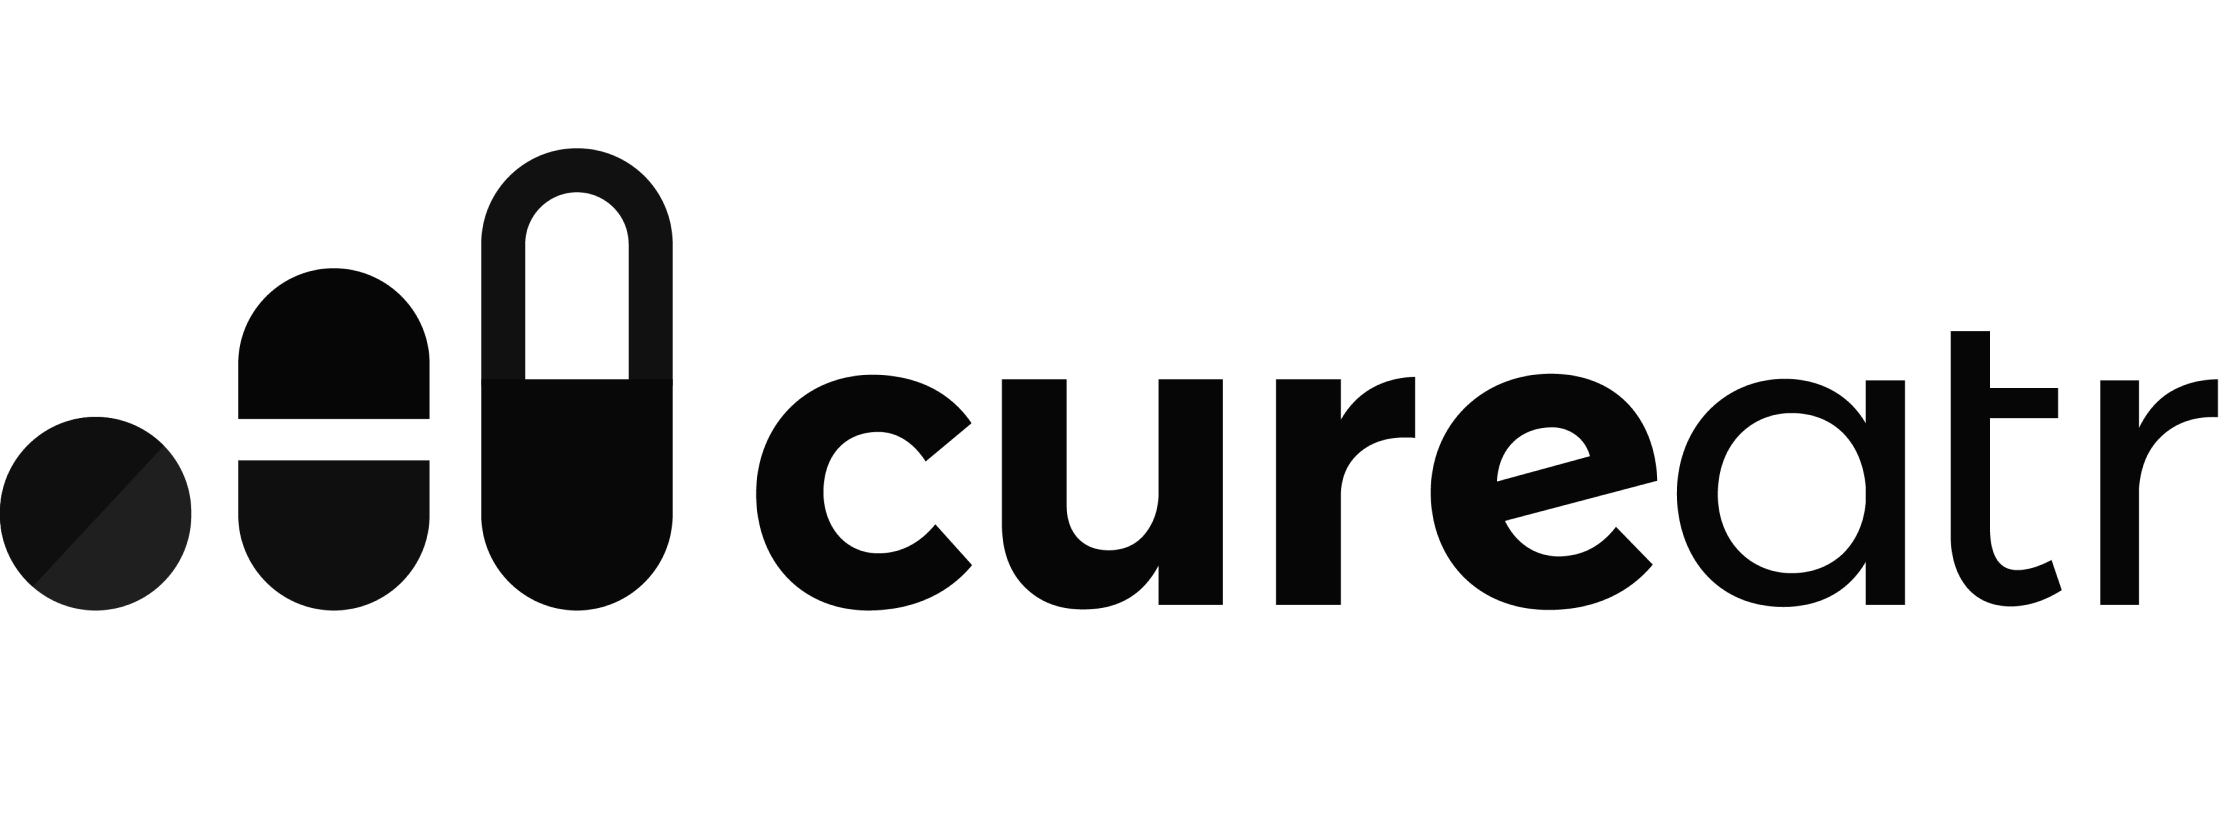 cureatr logo